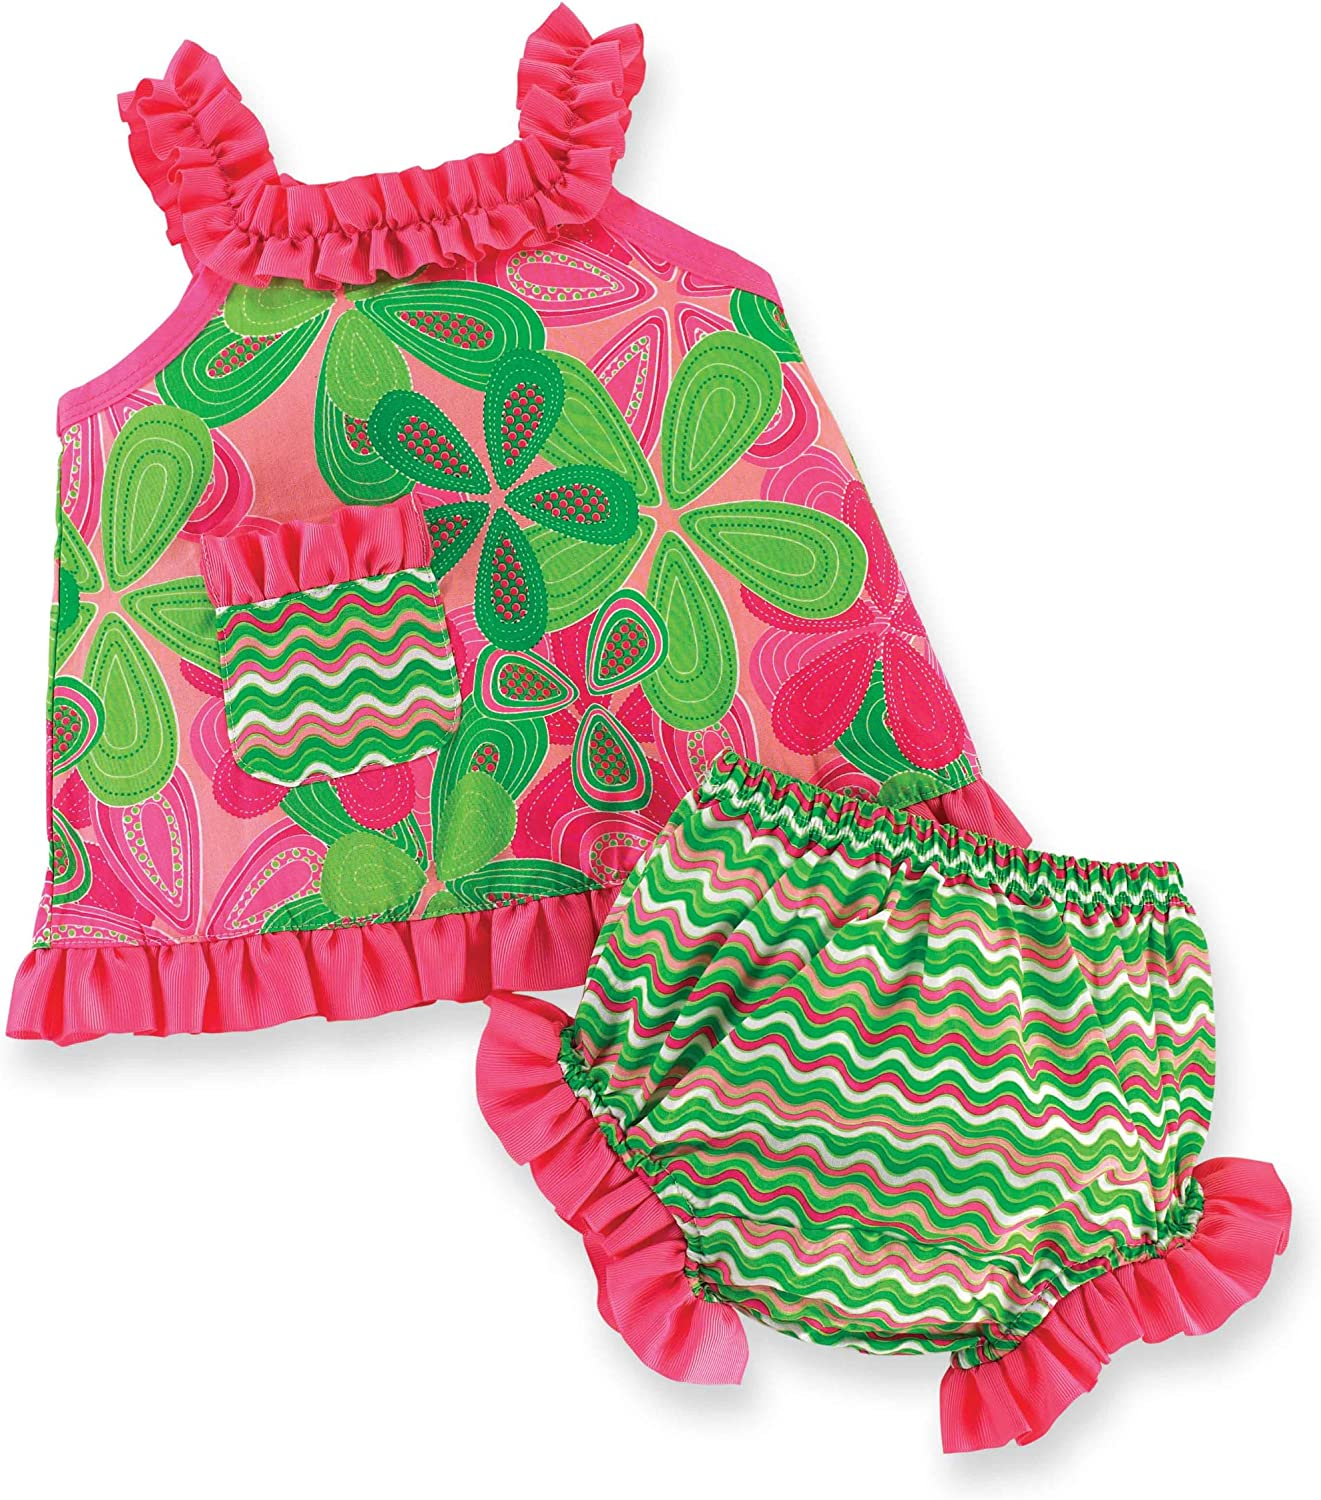 Mud Pie Baby-girls Newborn Little Sprout Swing Top and Bloomer Set